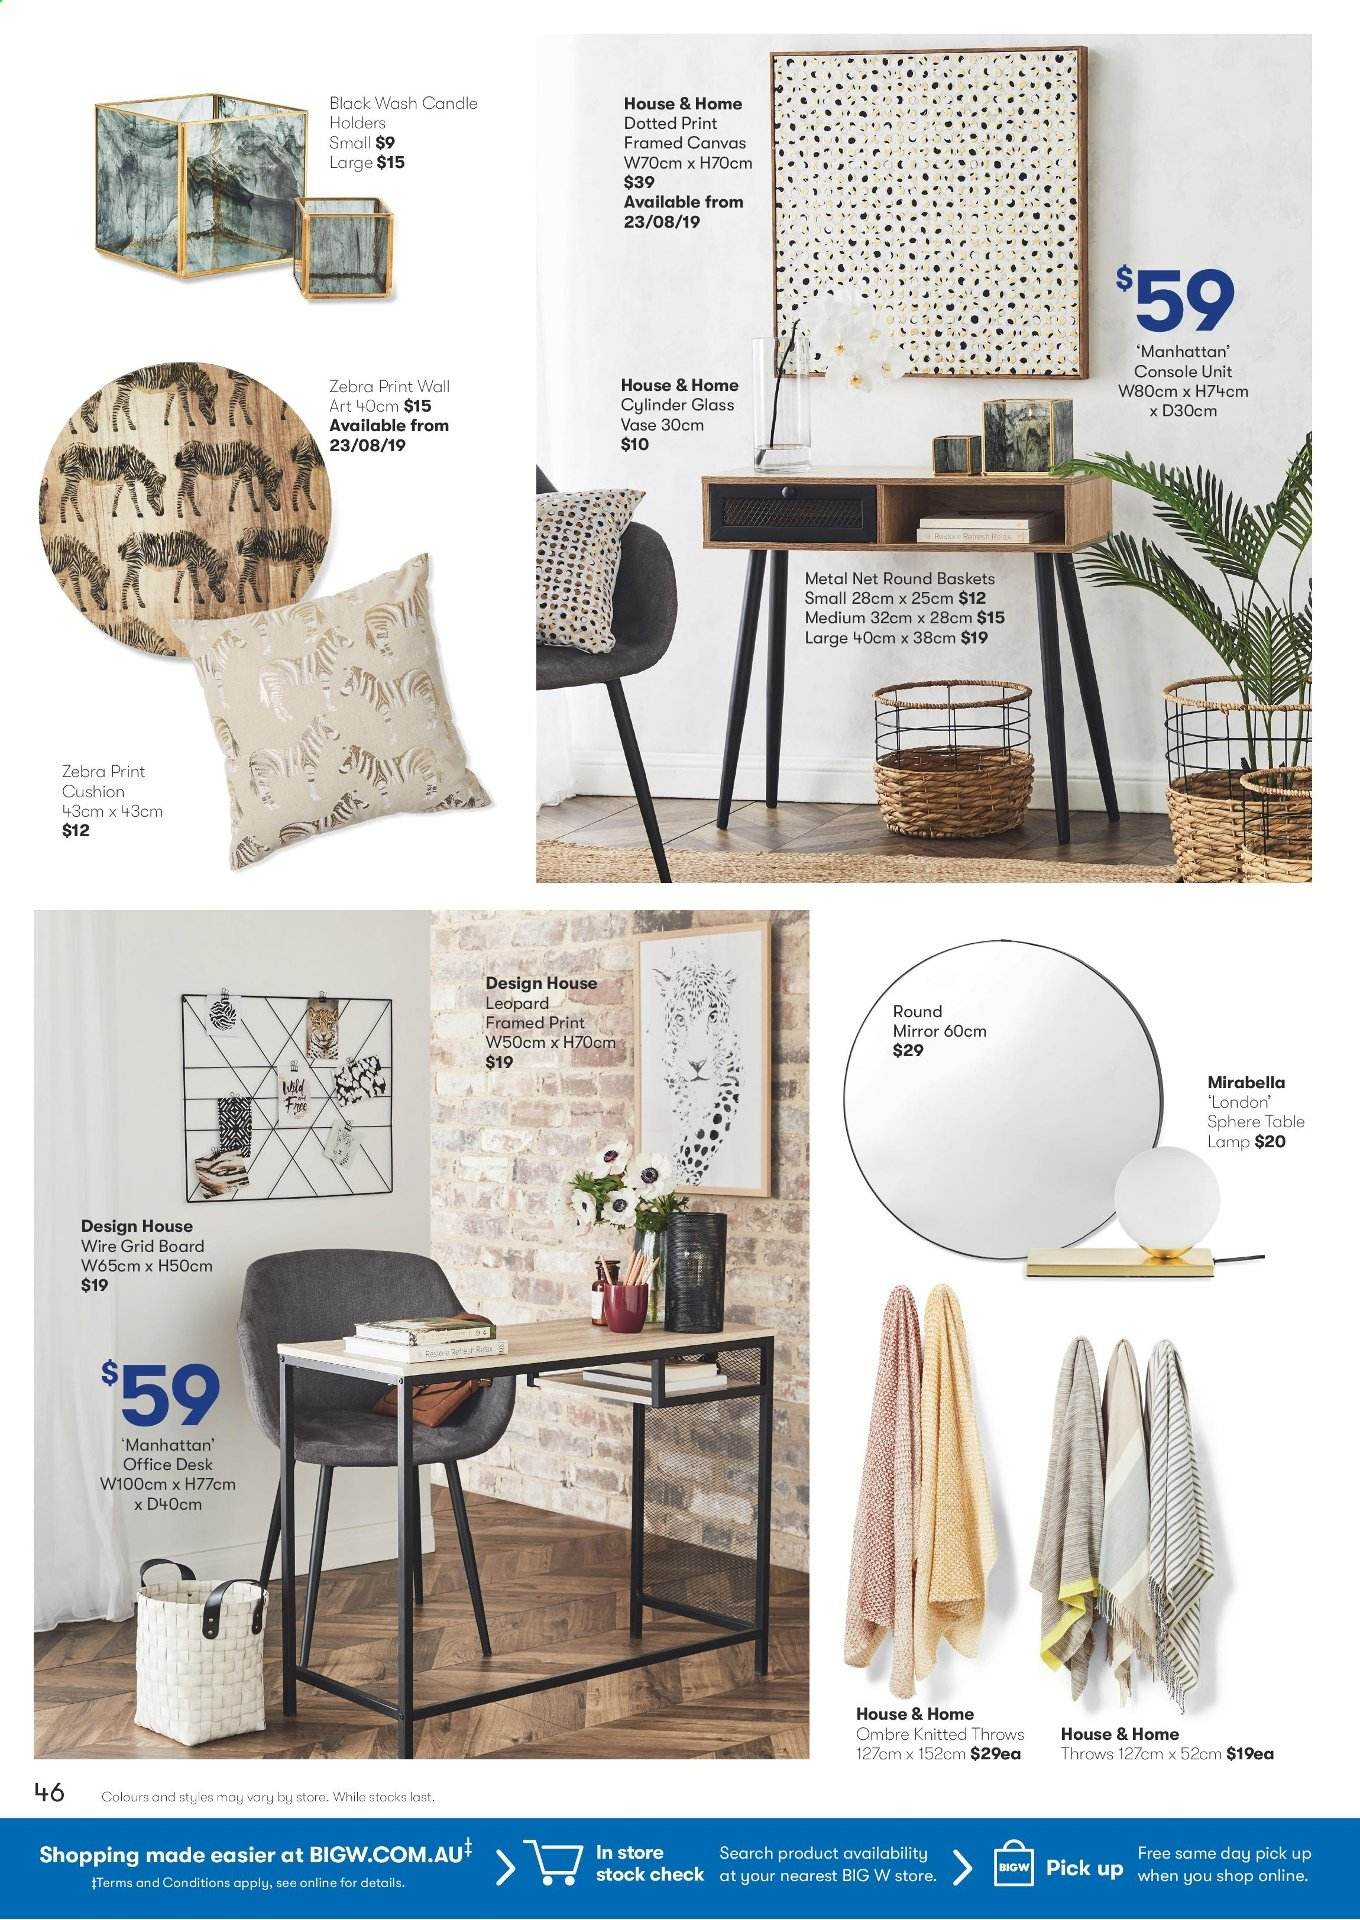 BIG W catalogue and weekly specials 15 8 2019 - 1 9 2019